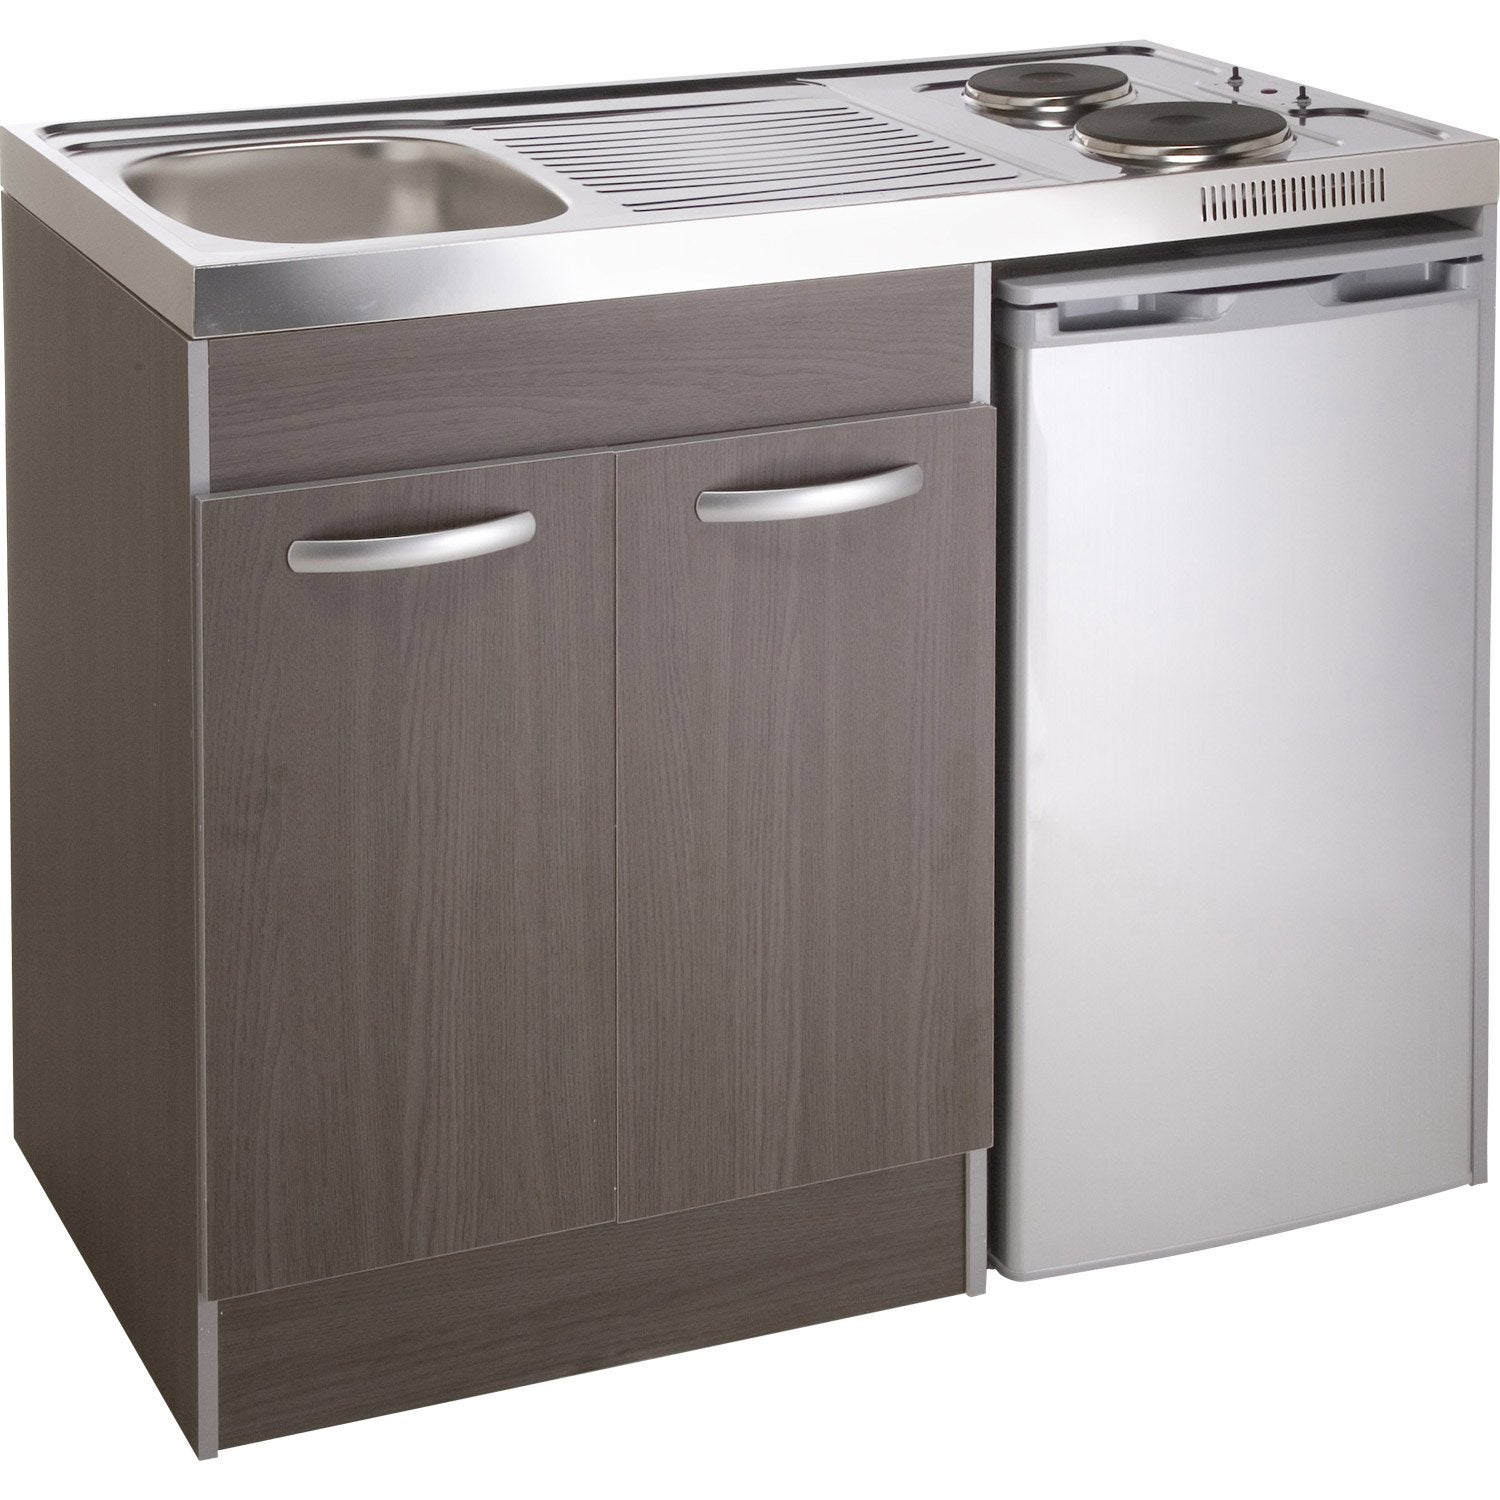 Kitchenette conforama - Kitchenette leroy merlin ...